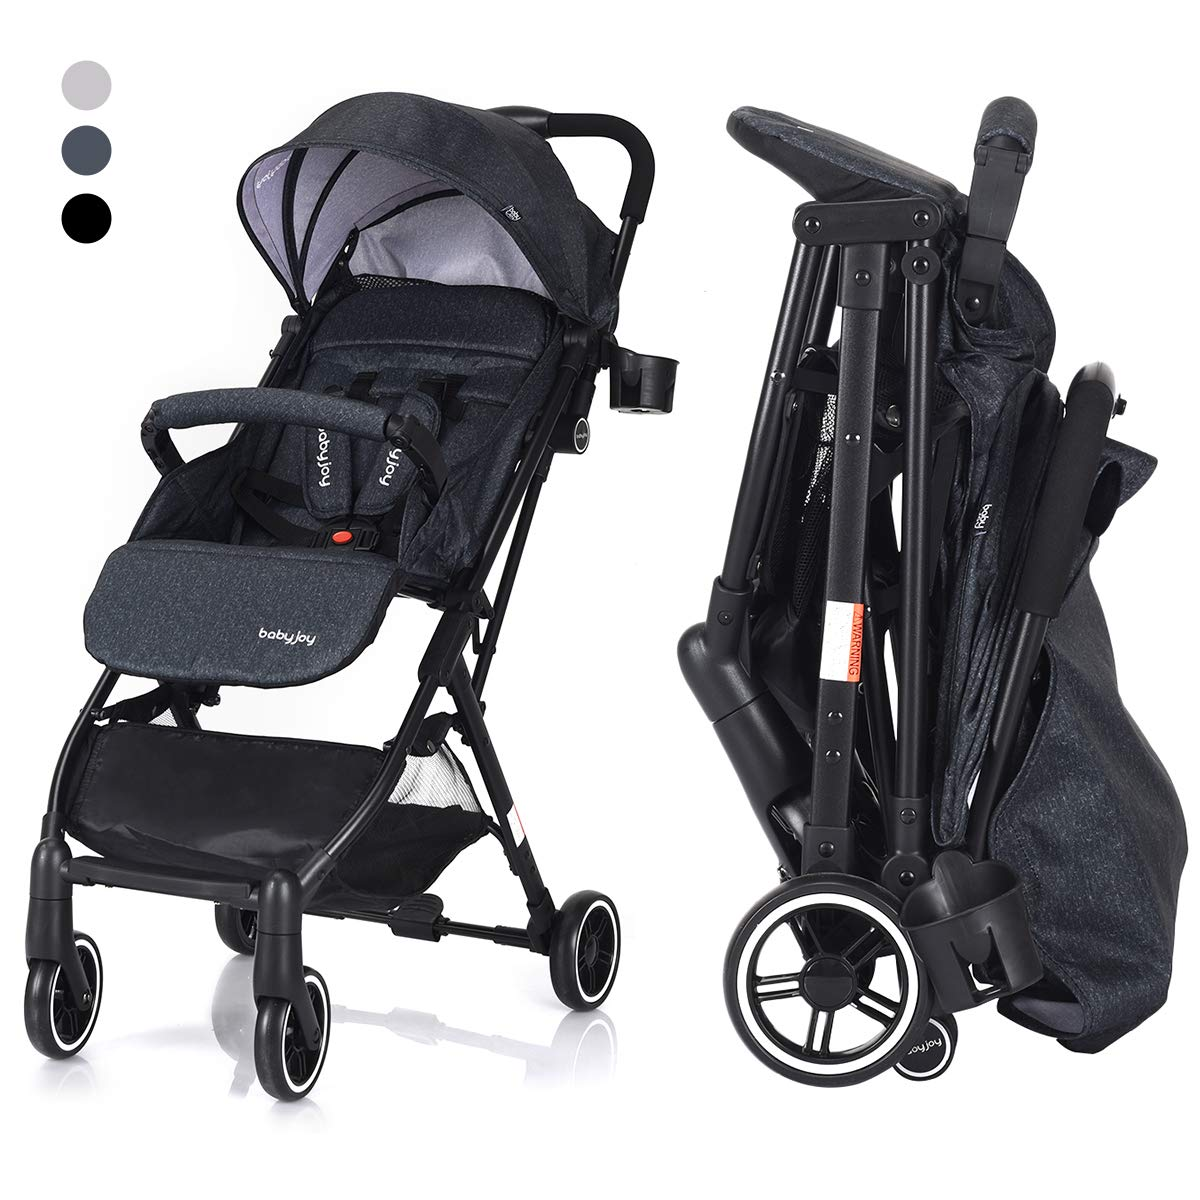 COSTWAY Kid Pram | Folding Baby Stroller | Travel System with Five-Point Harness, Adjustable Backrest & Footrest, Rain Cover, Shock Proof Wheels, 360 Degree Swivel (Grey)